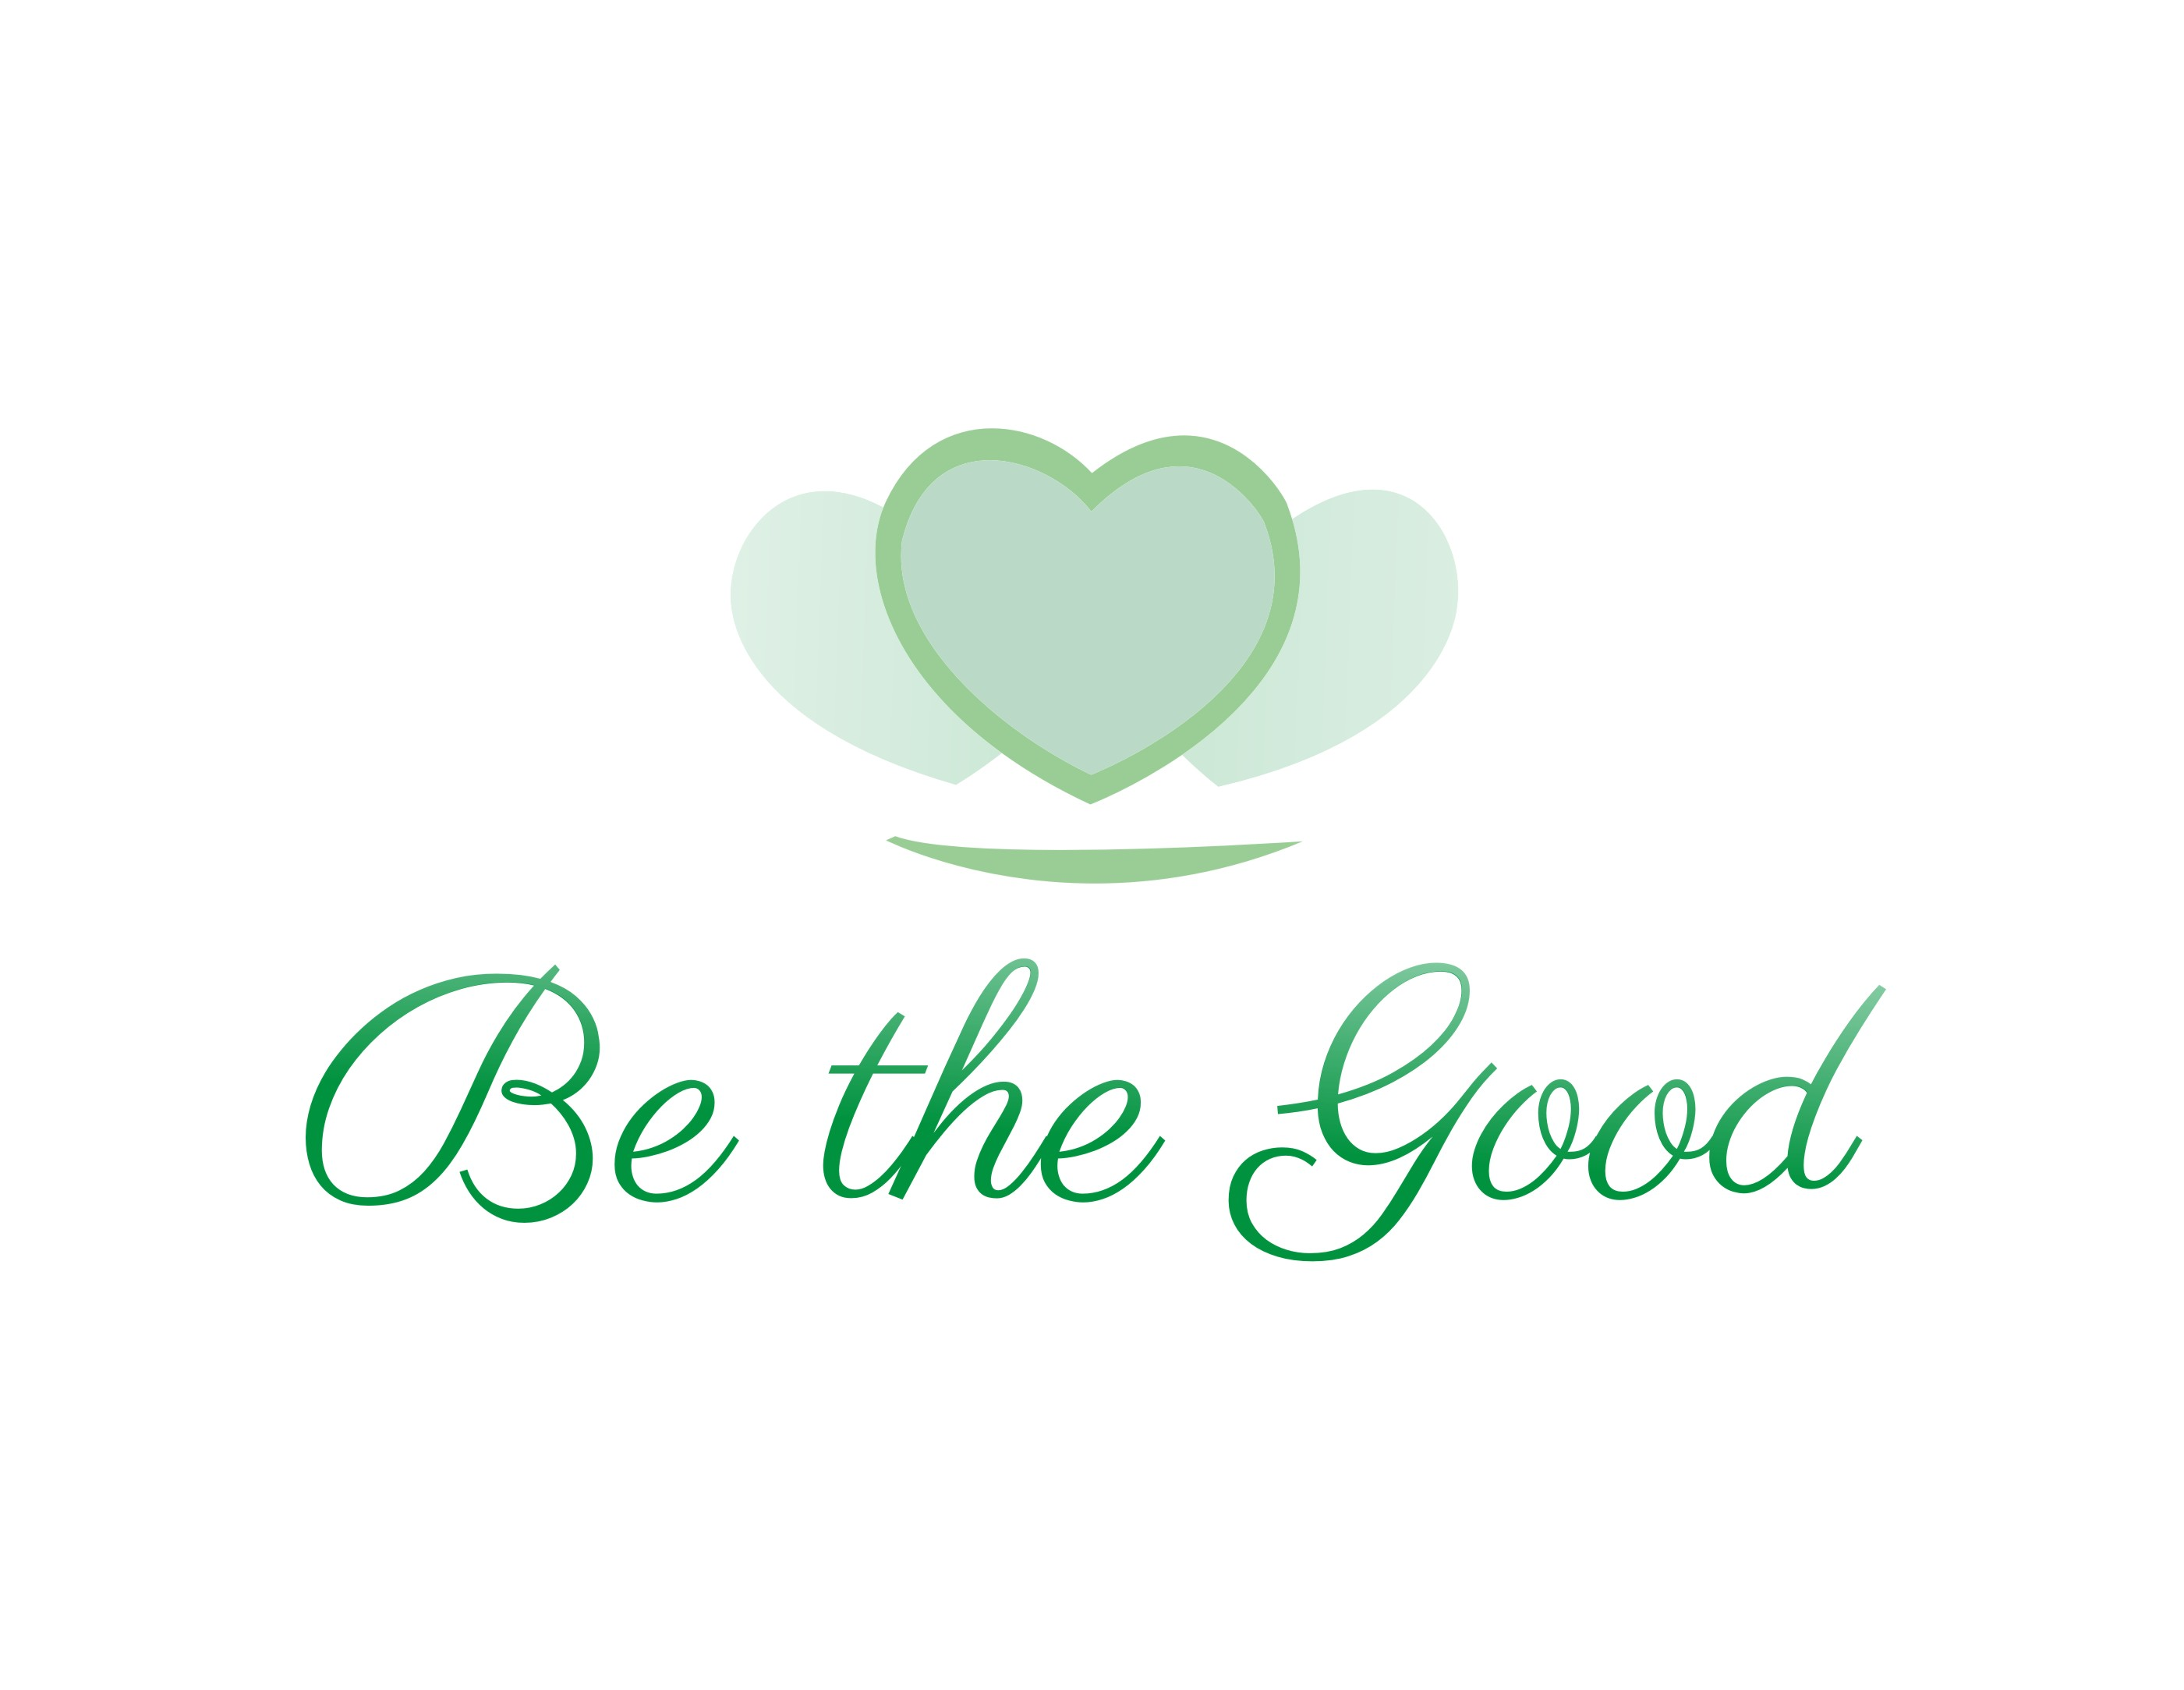 Logo Design by Shailender Kumar - Entry No. 106 in the Logo Design Contest New Logo Design for Be the Good.